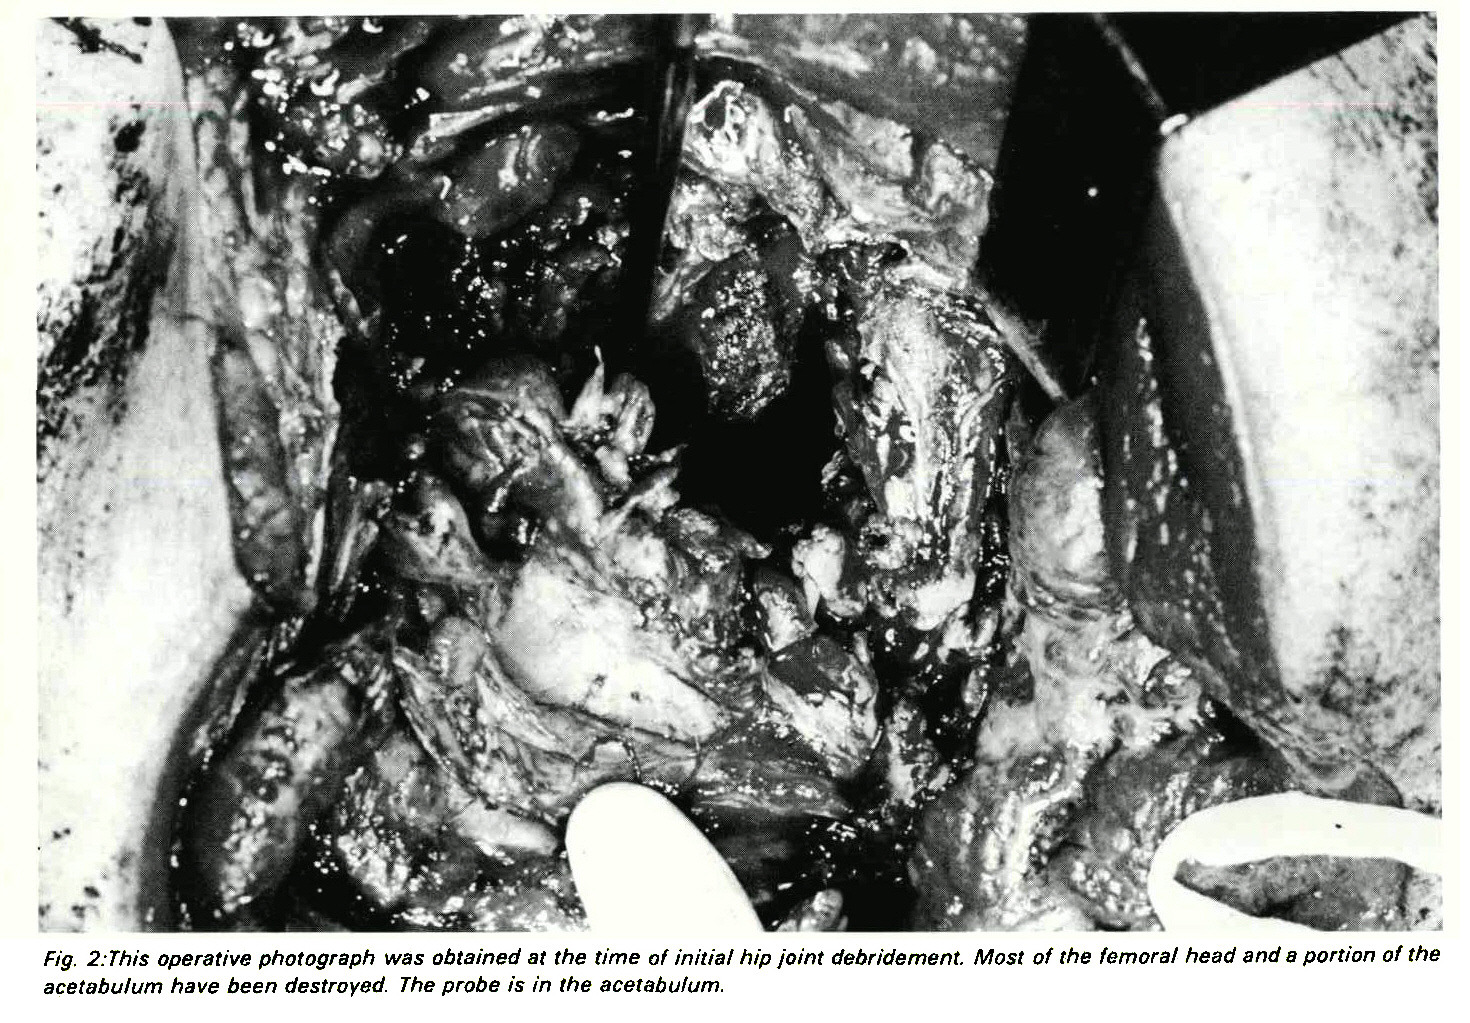 Fig. 2:This operative photograph was obtained at the time of initial hip joint debridement. Most of the femora/ head and a portion of the acetabulum have been destroyed. The probe is in the acetabufum.